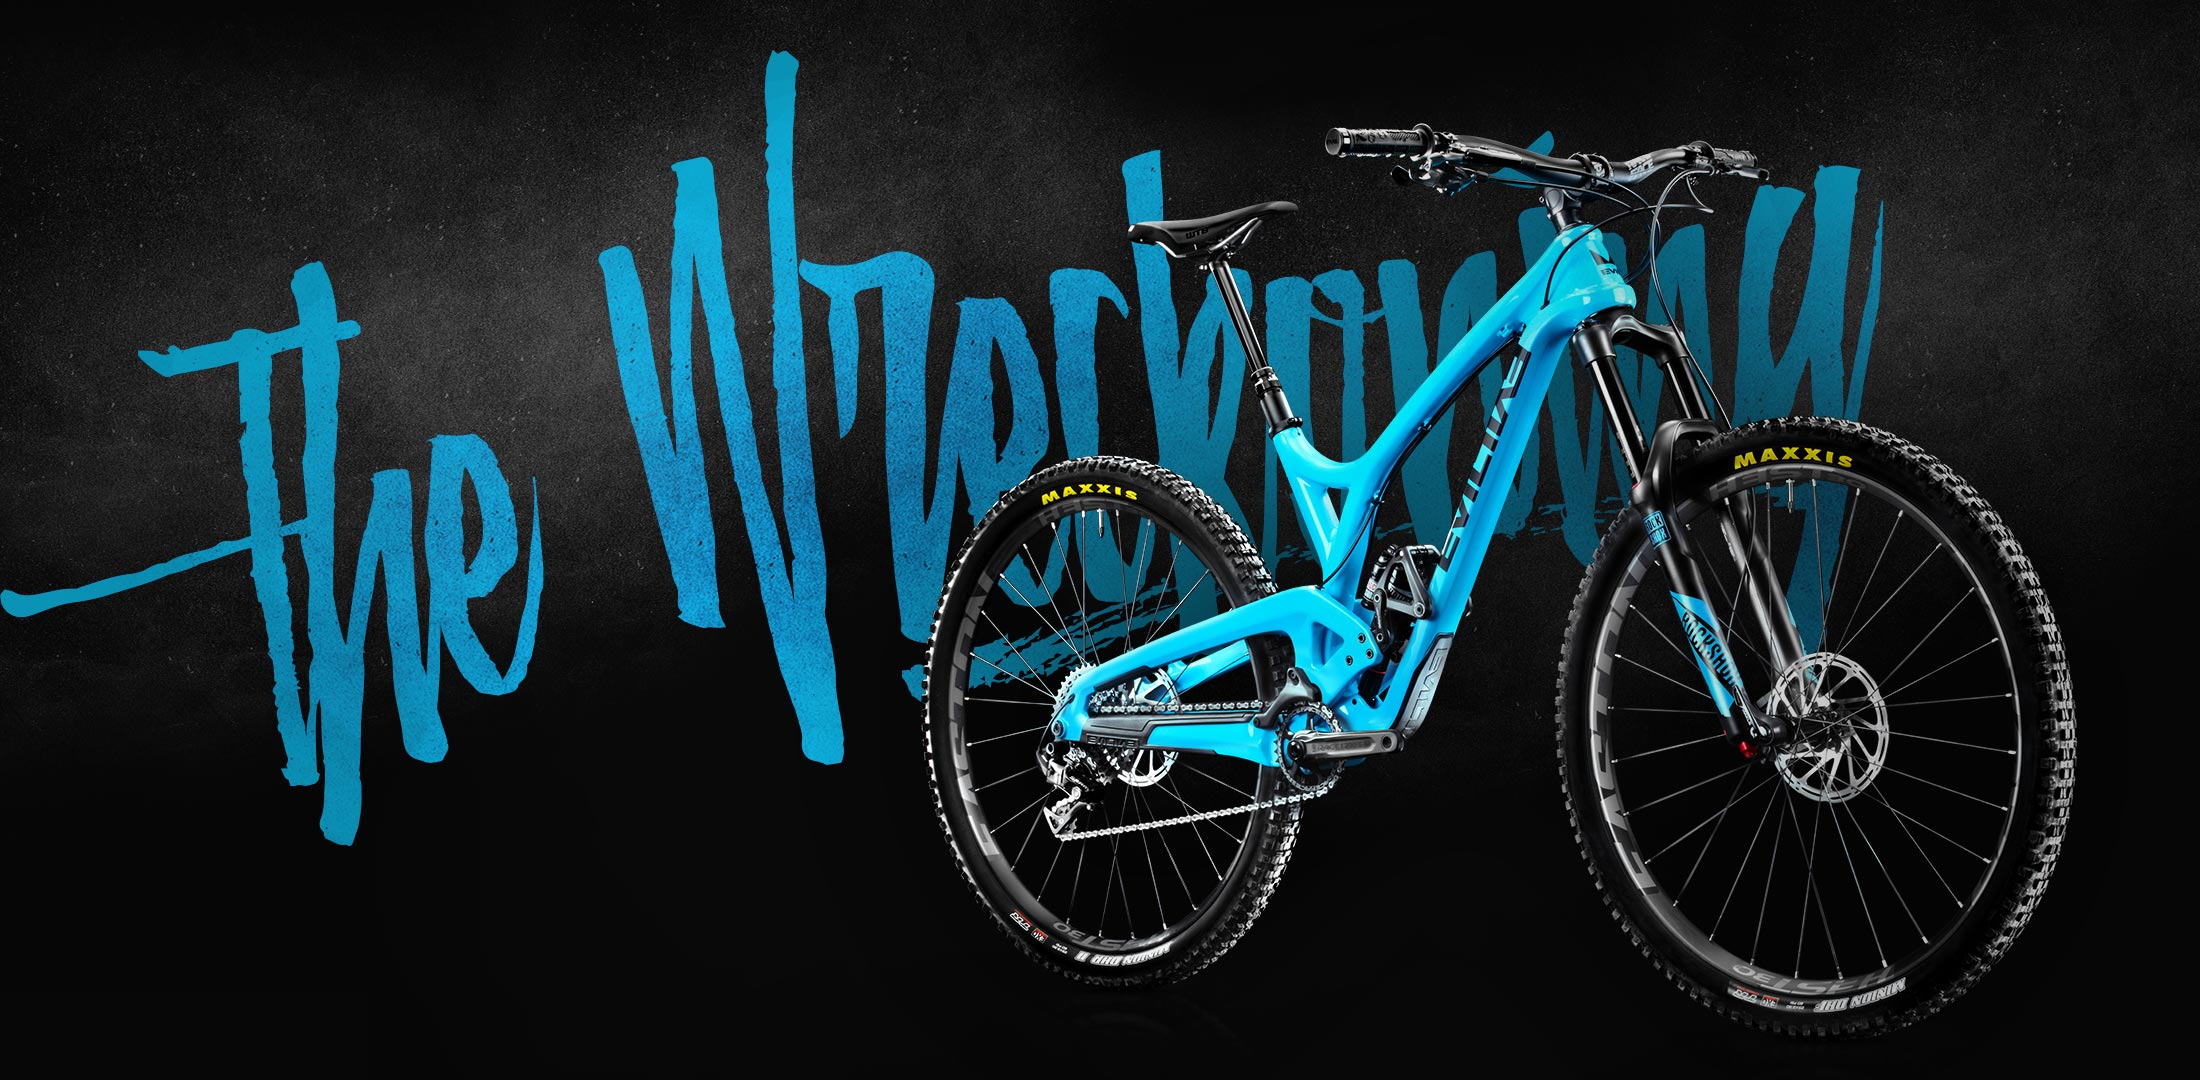 evil-wreckoning-bike-hero-2200x1080